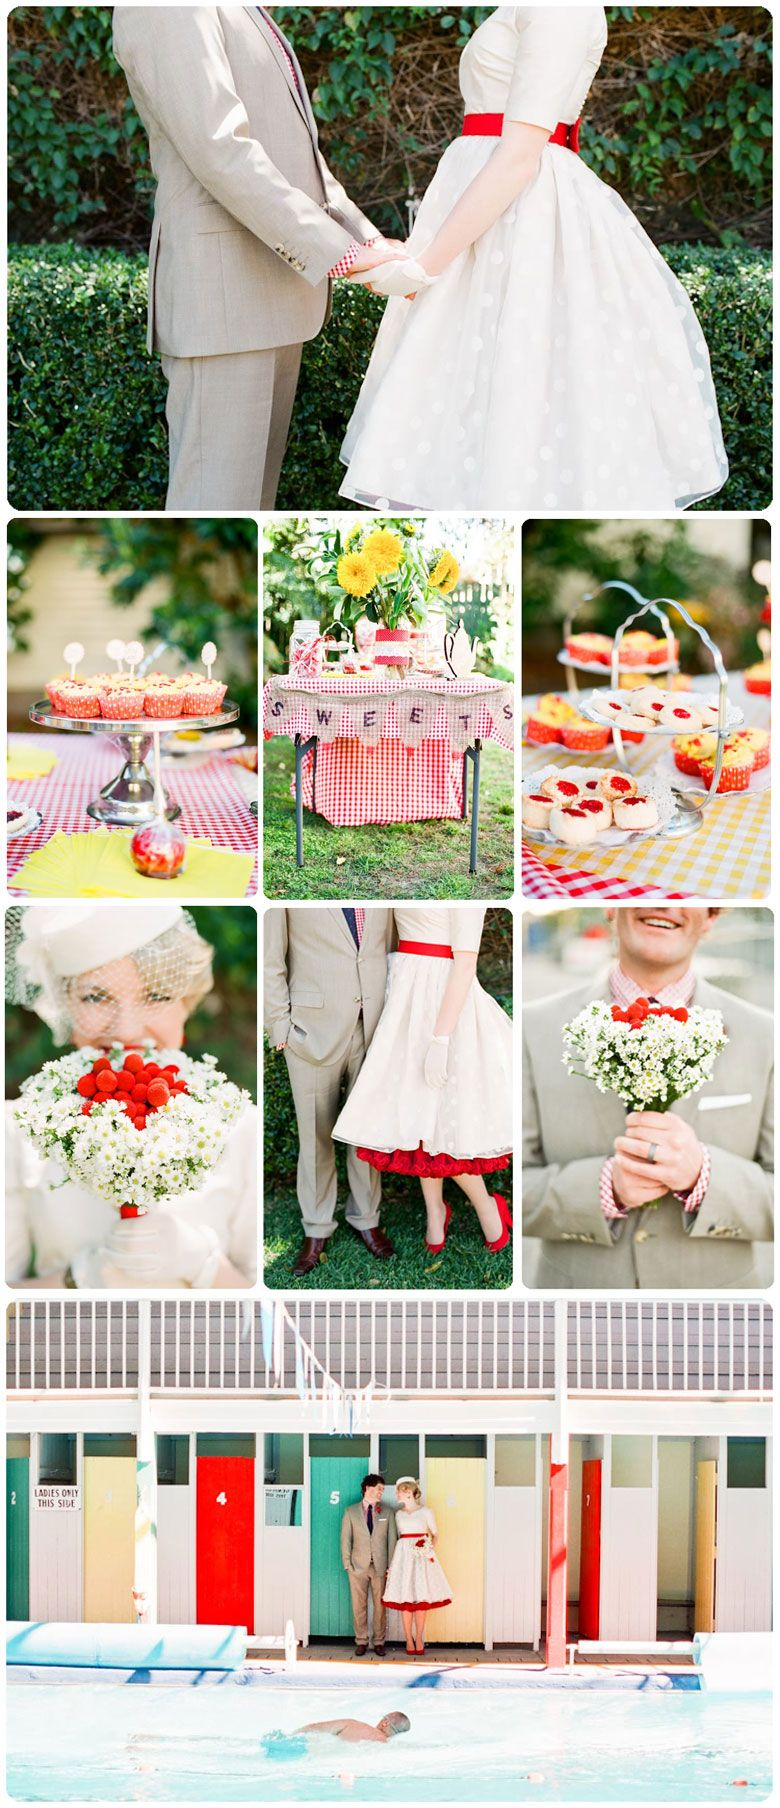 50s Themed Wedding Want So Bad Omg In Love Just Need A Ring